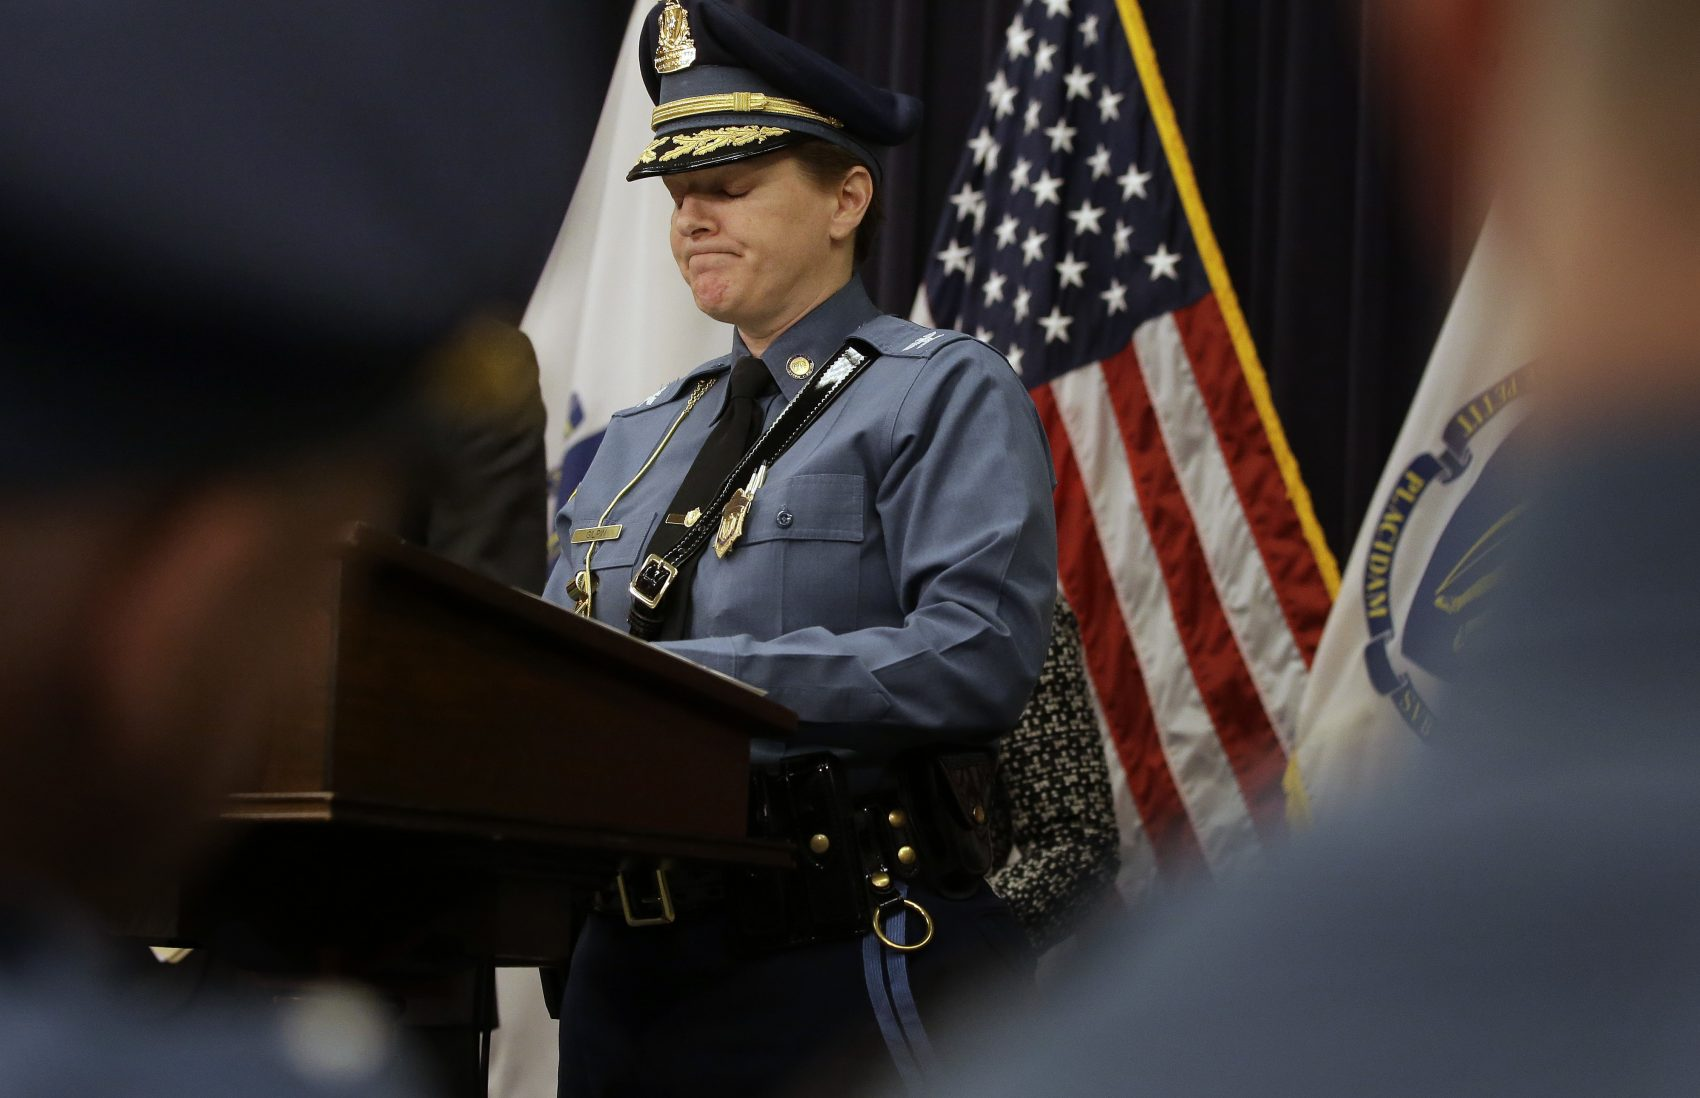 Massachusetts State Police Col. Kerry Gilpin faces reporters during a news conference April 2 at the State House. (Steven Senne/AP)